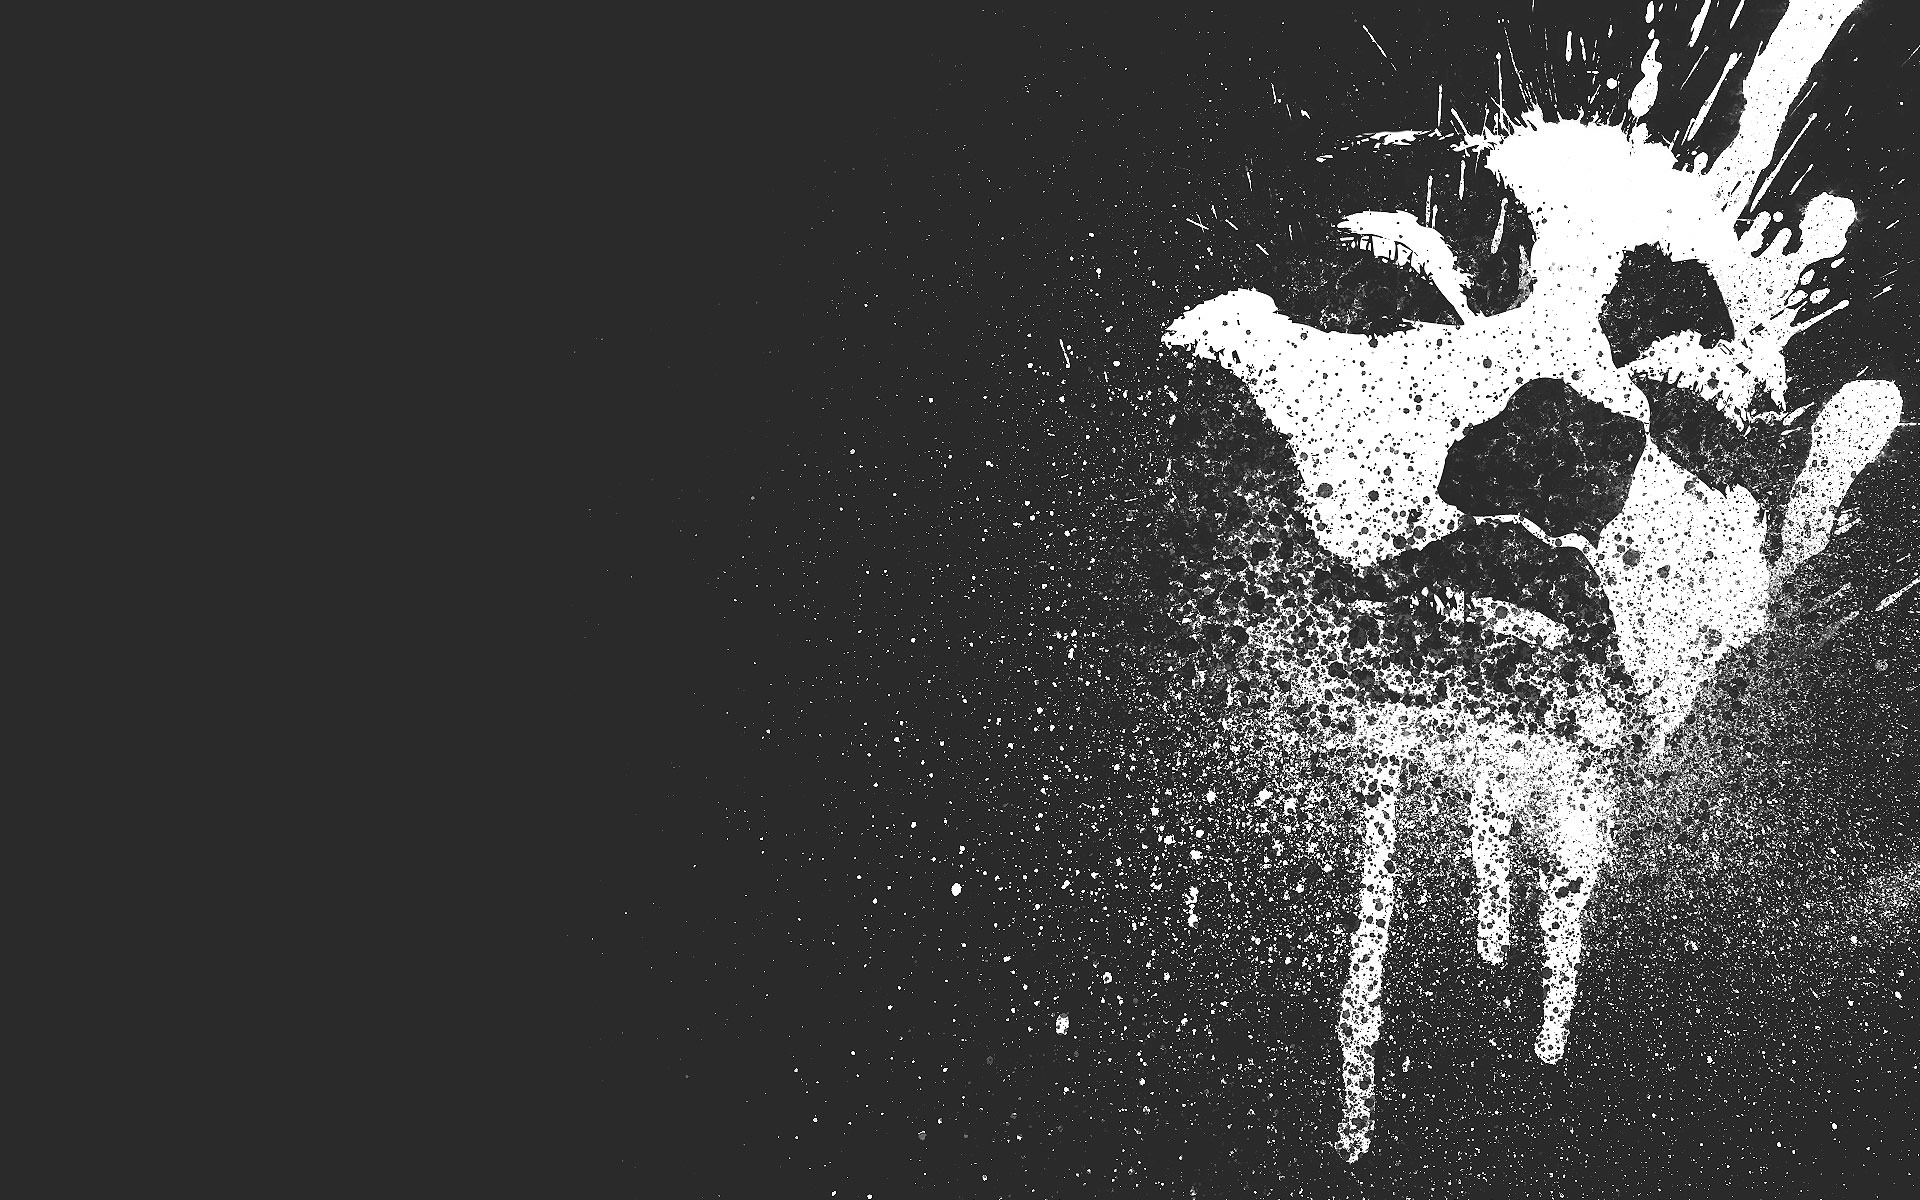 black & white abstract wallpaper android wallpaper | wall art